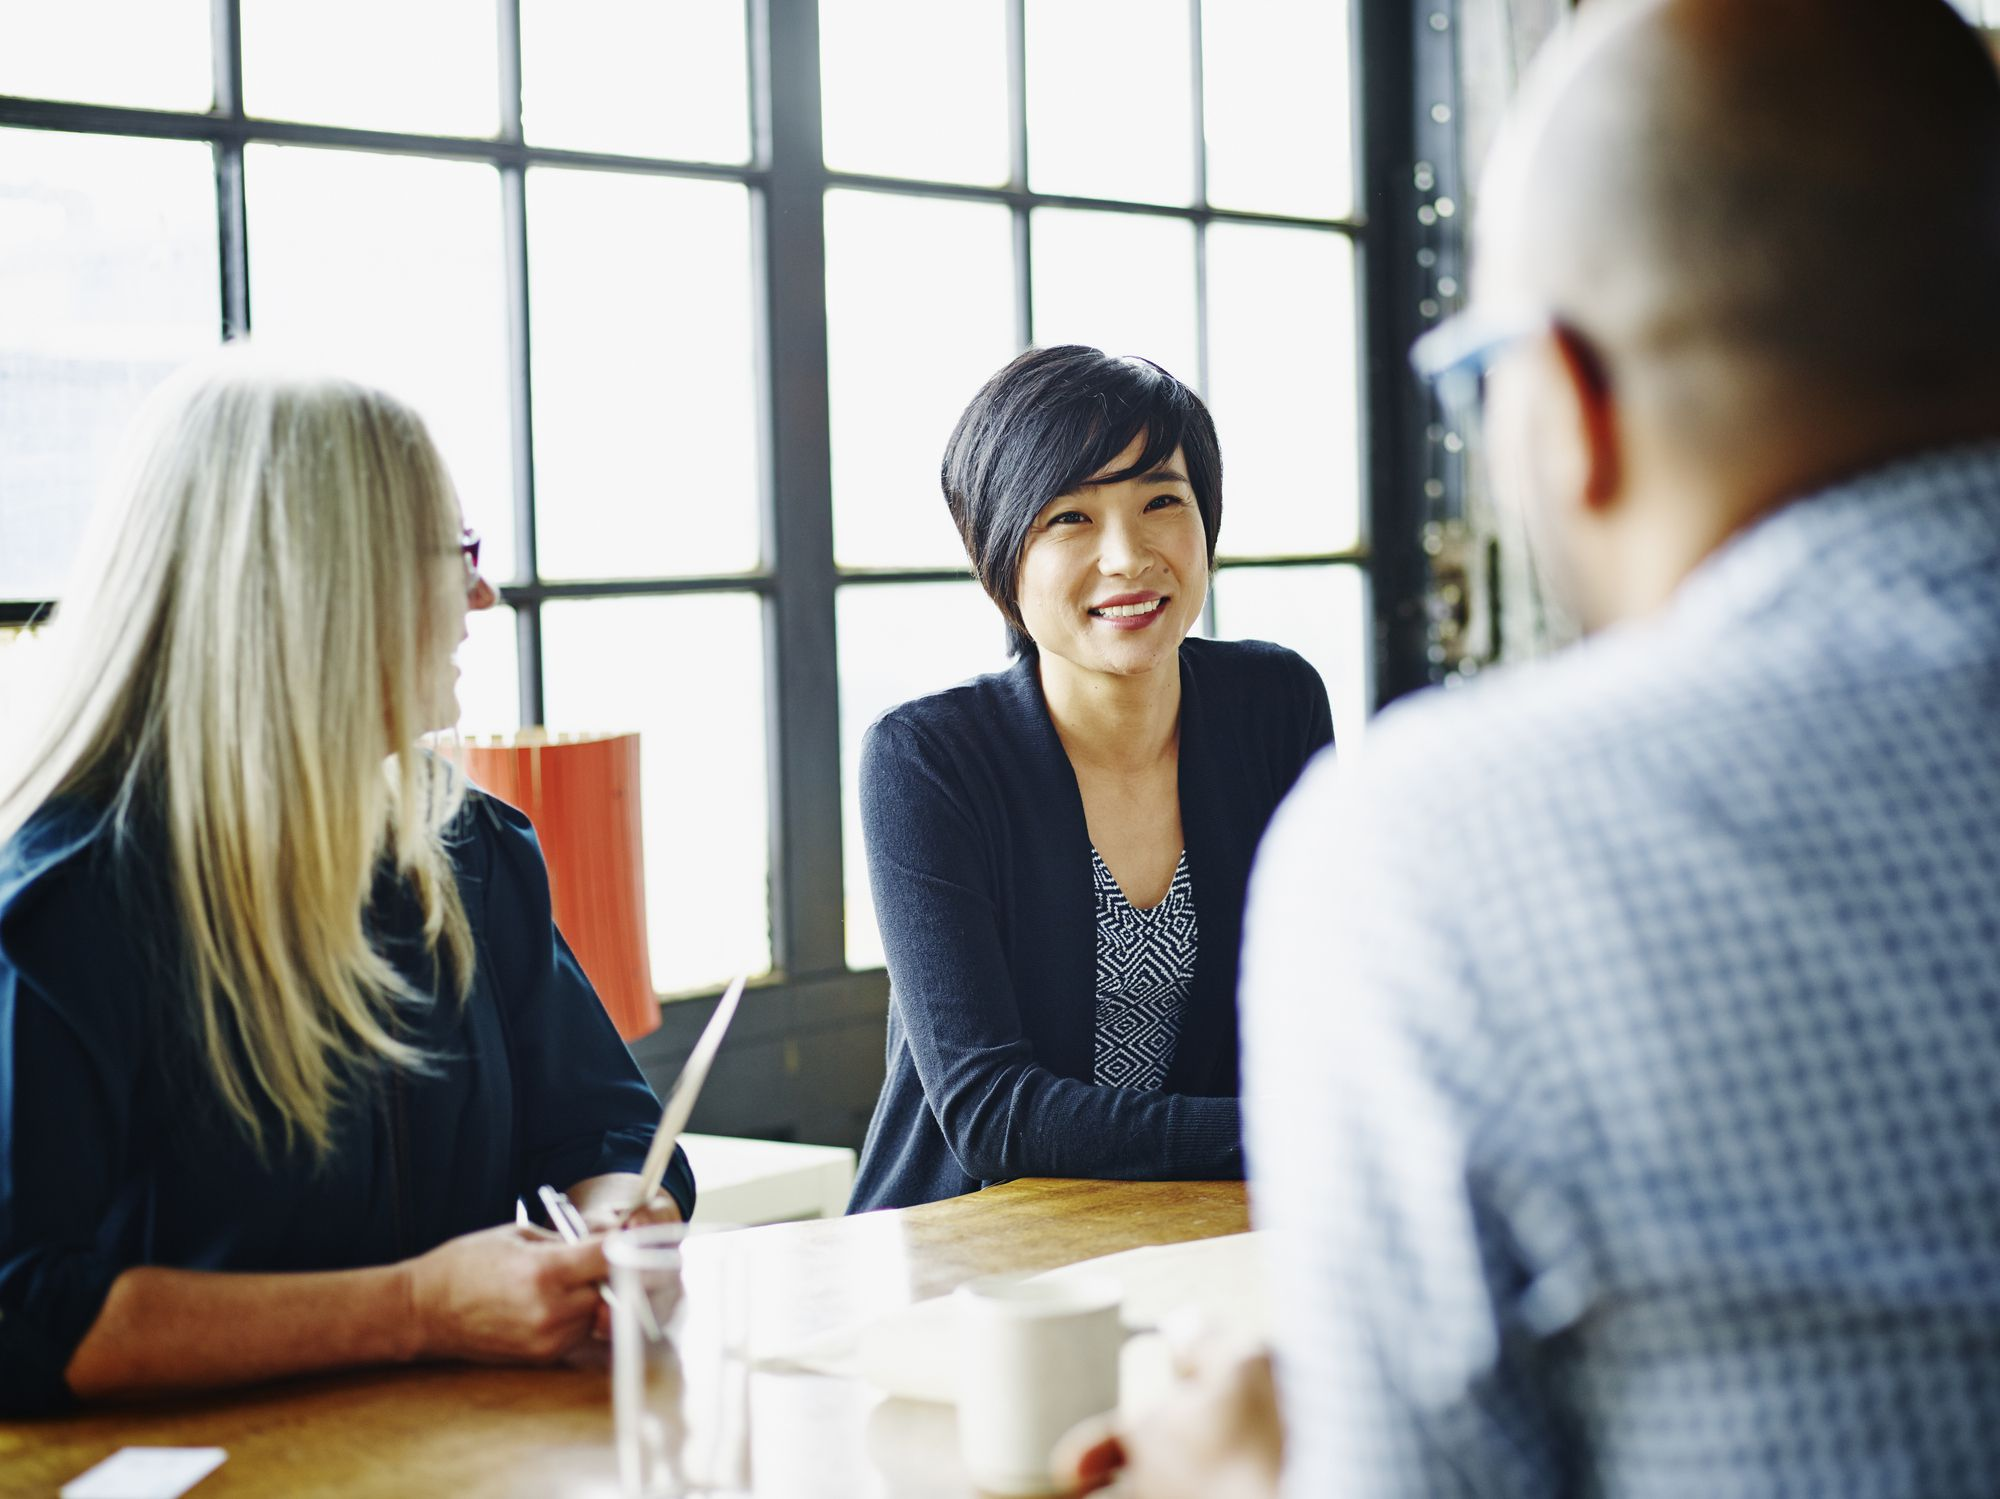 4 Ways to Sell Yourself in Your Next Job Interview